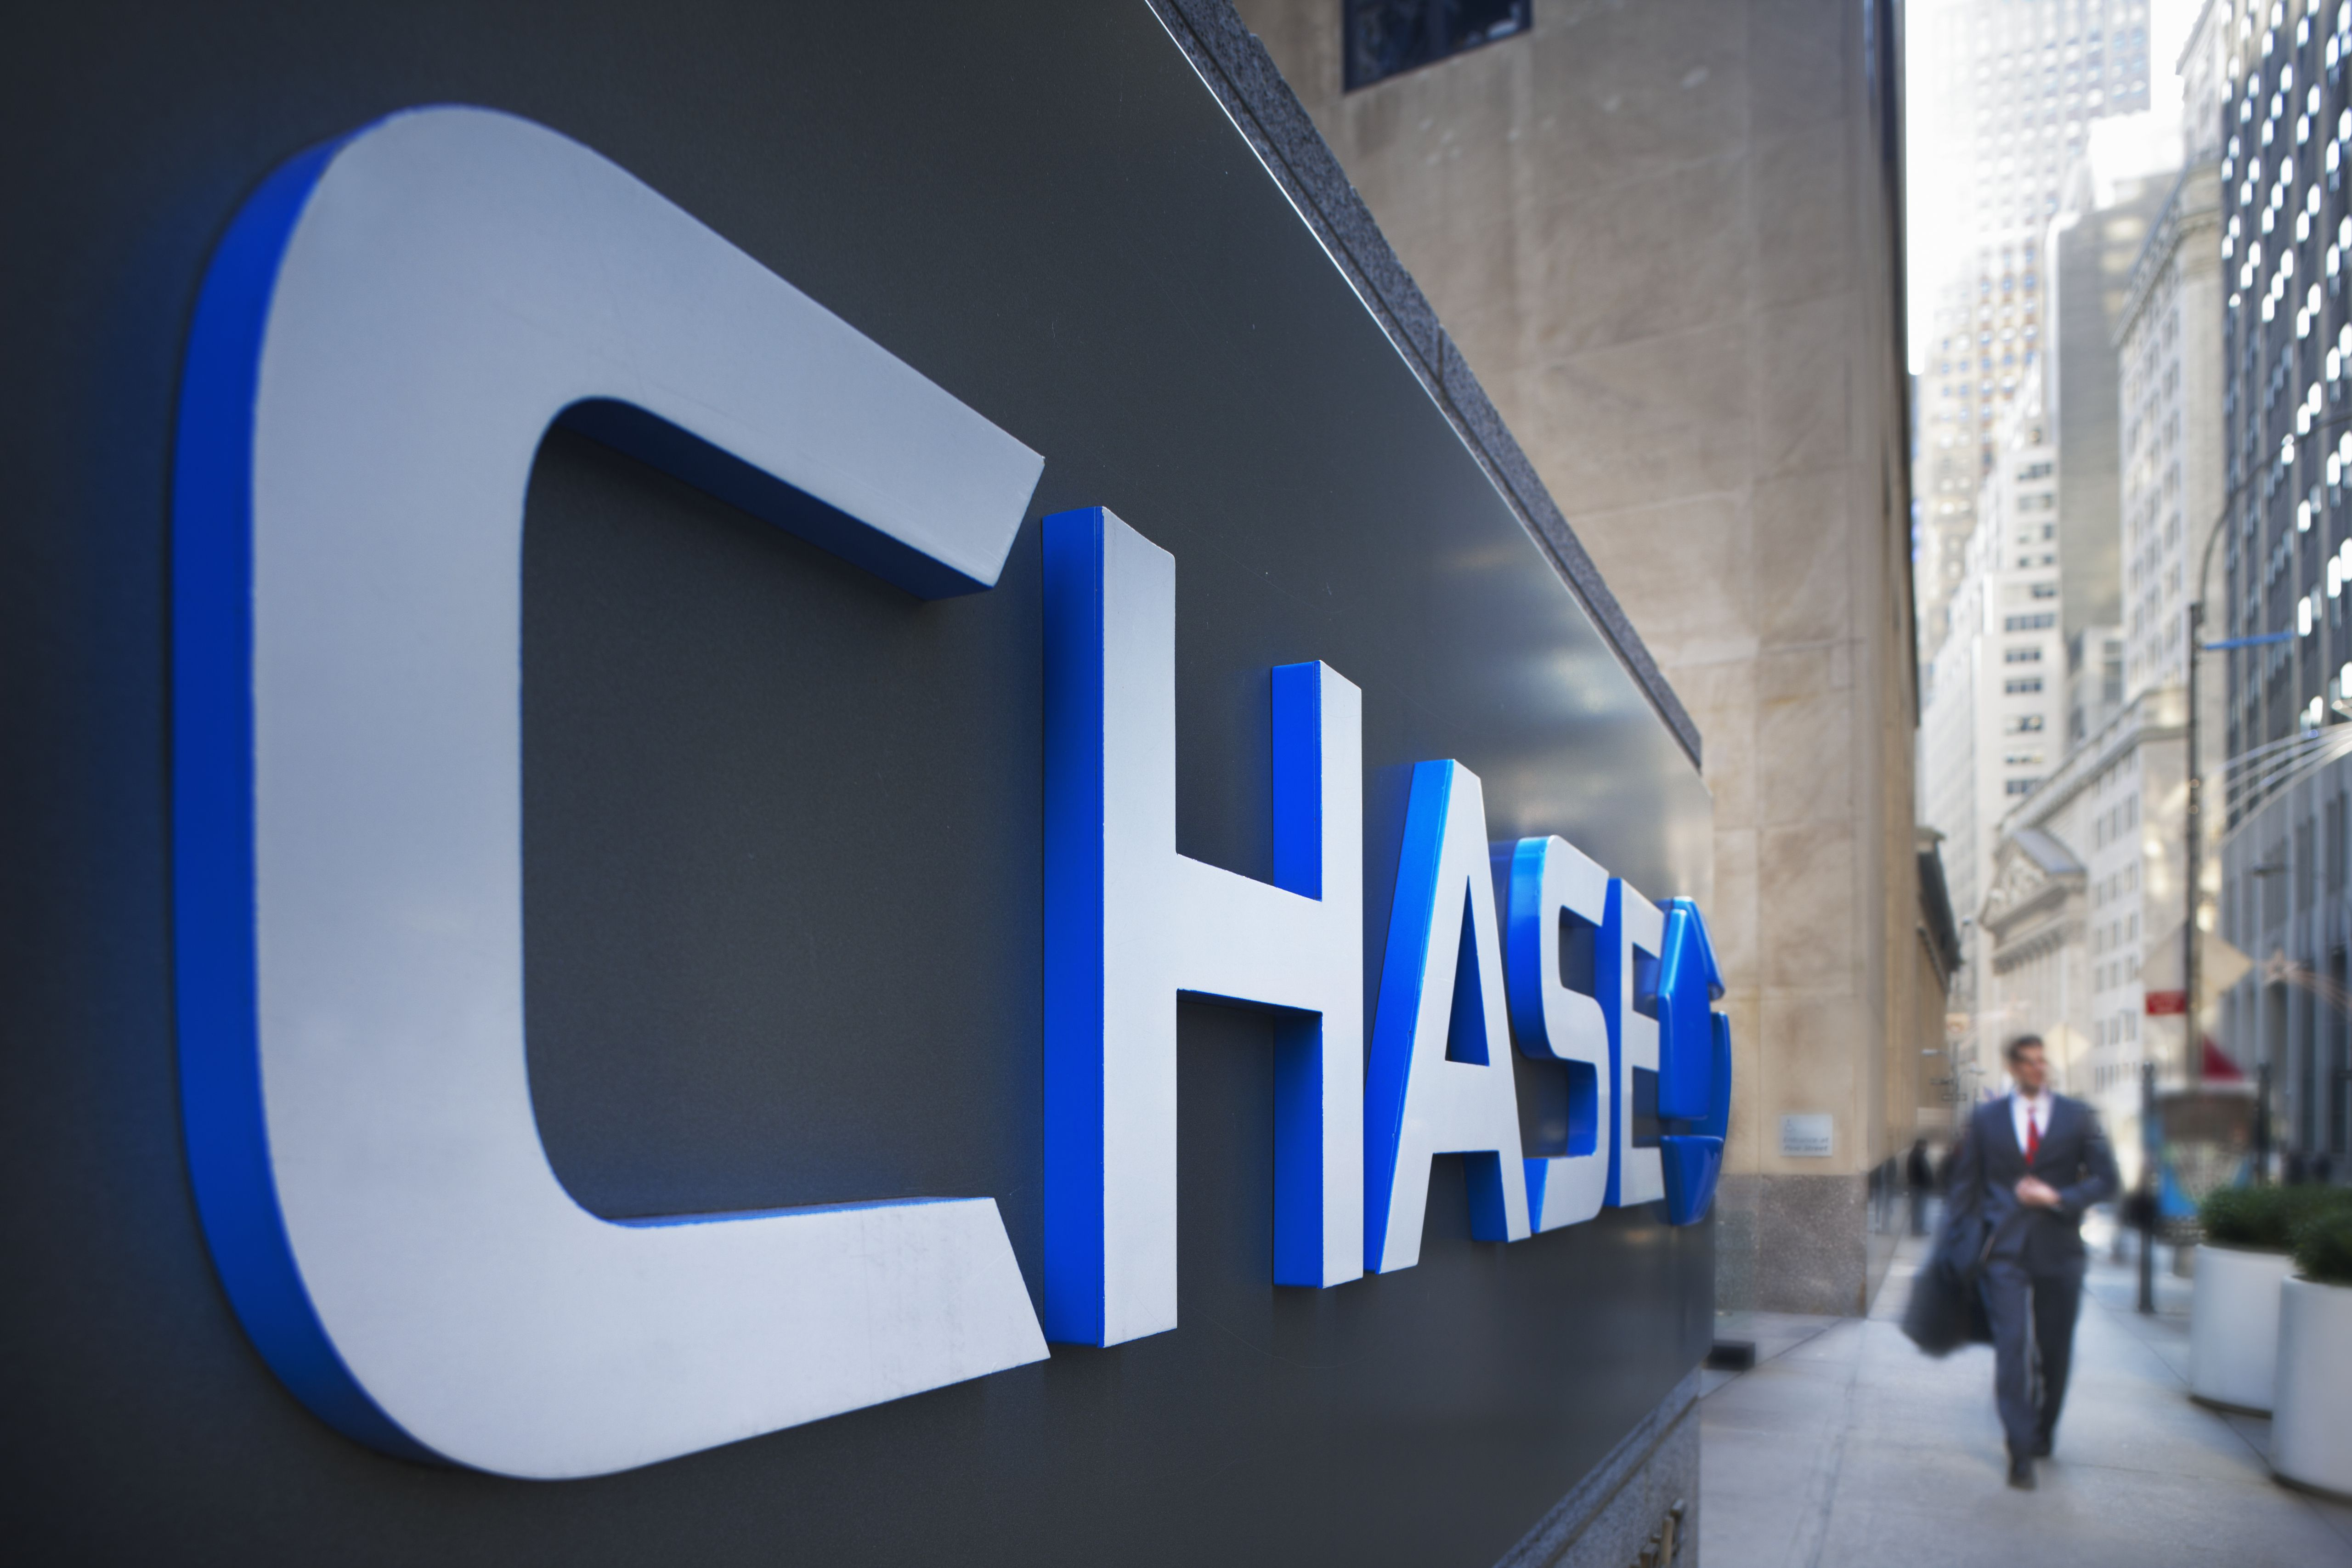 U.S. Bank and Chase Free Checking Accounts: Hidden Fees or Free?